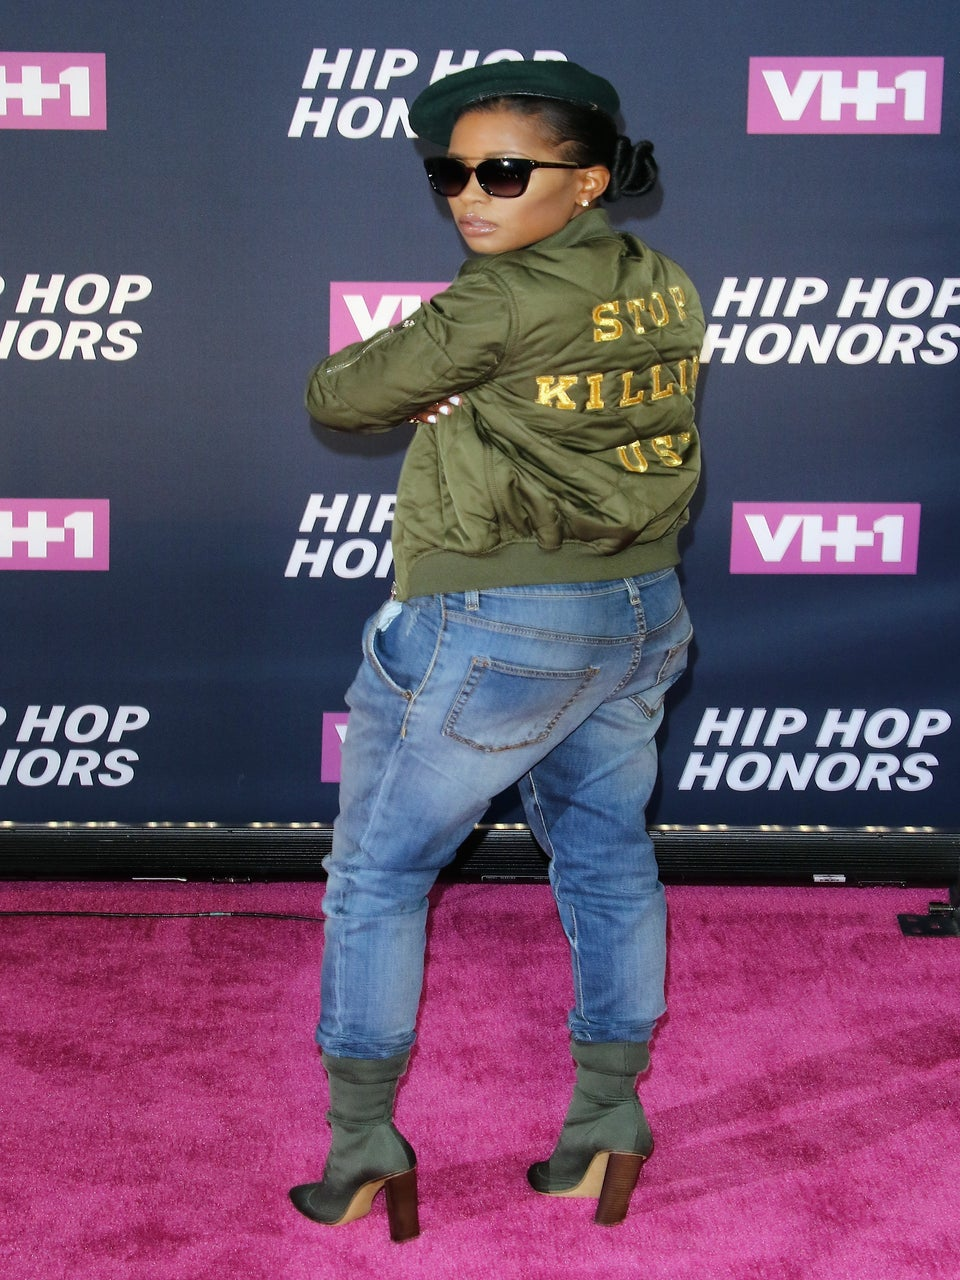 Dej Loaf Makes Powerful Statement With 'Stop Killing Us' Jacket at VH1 Hip Hop Honors